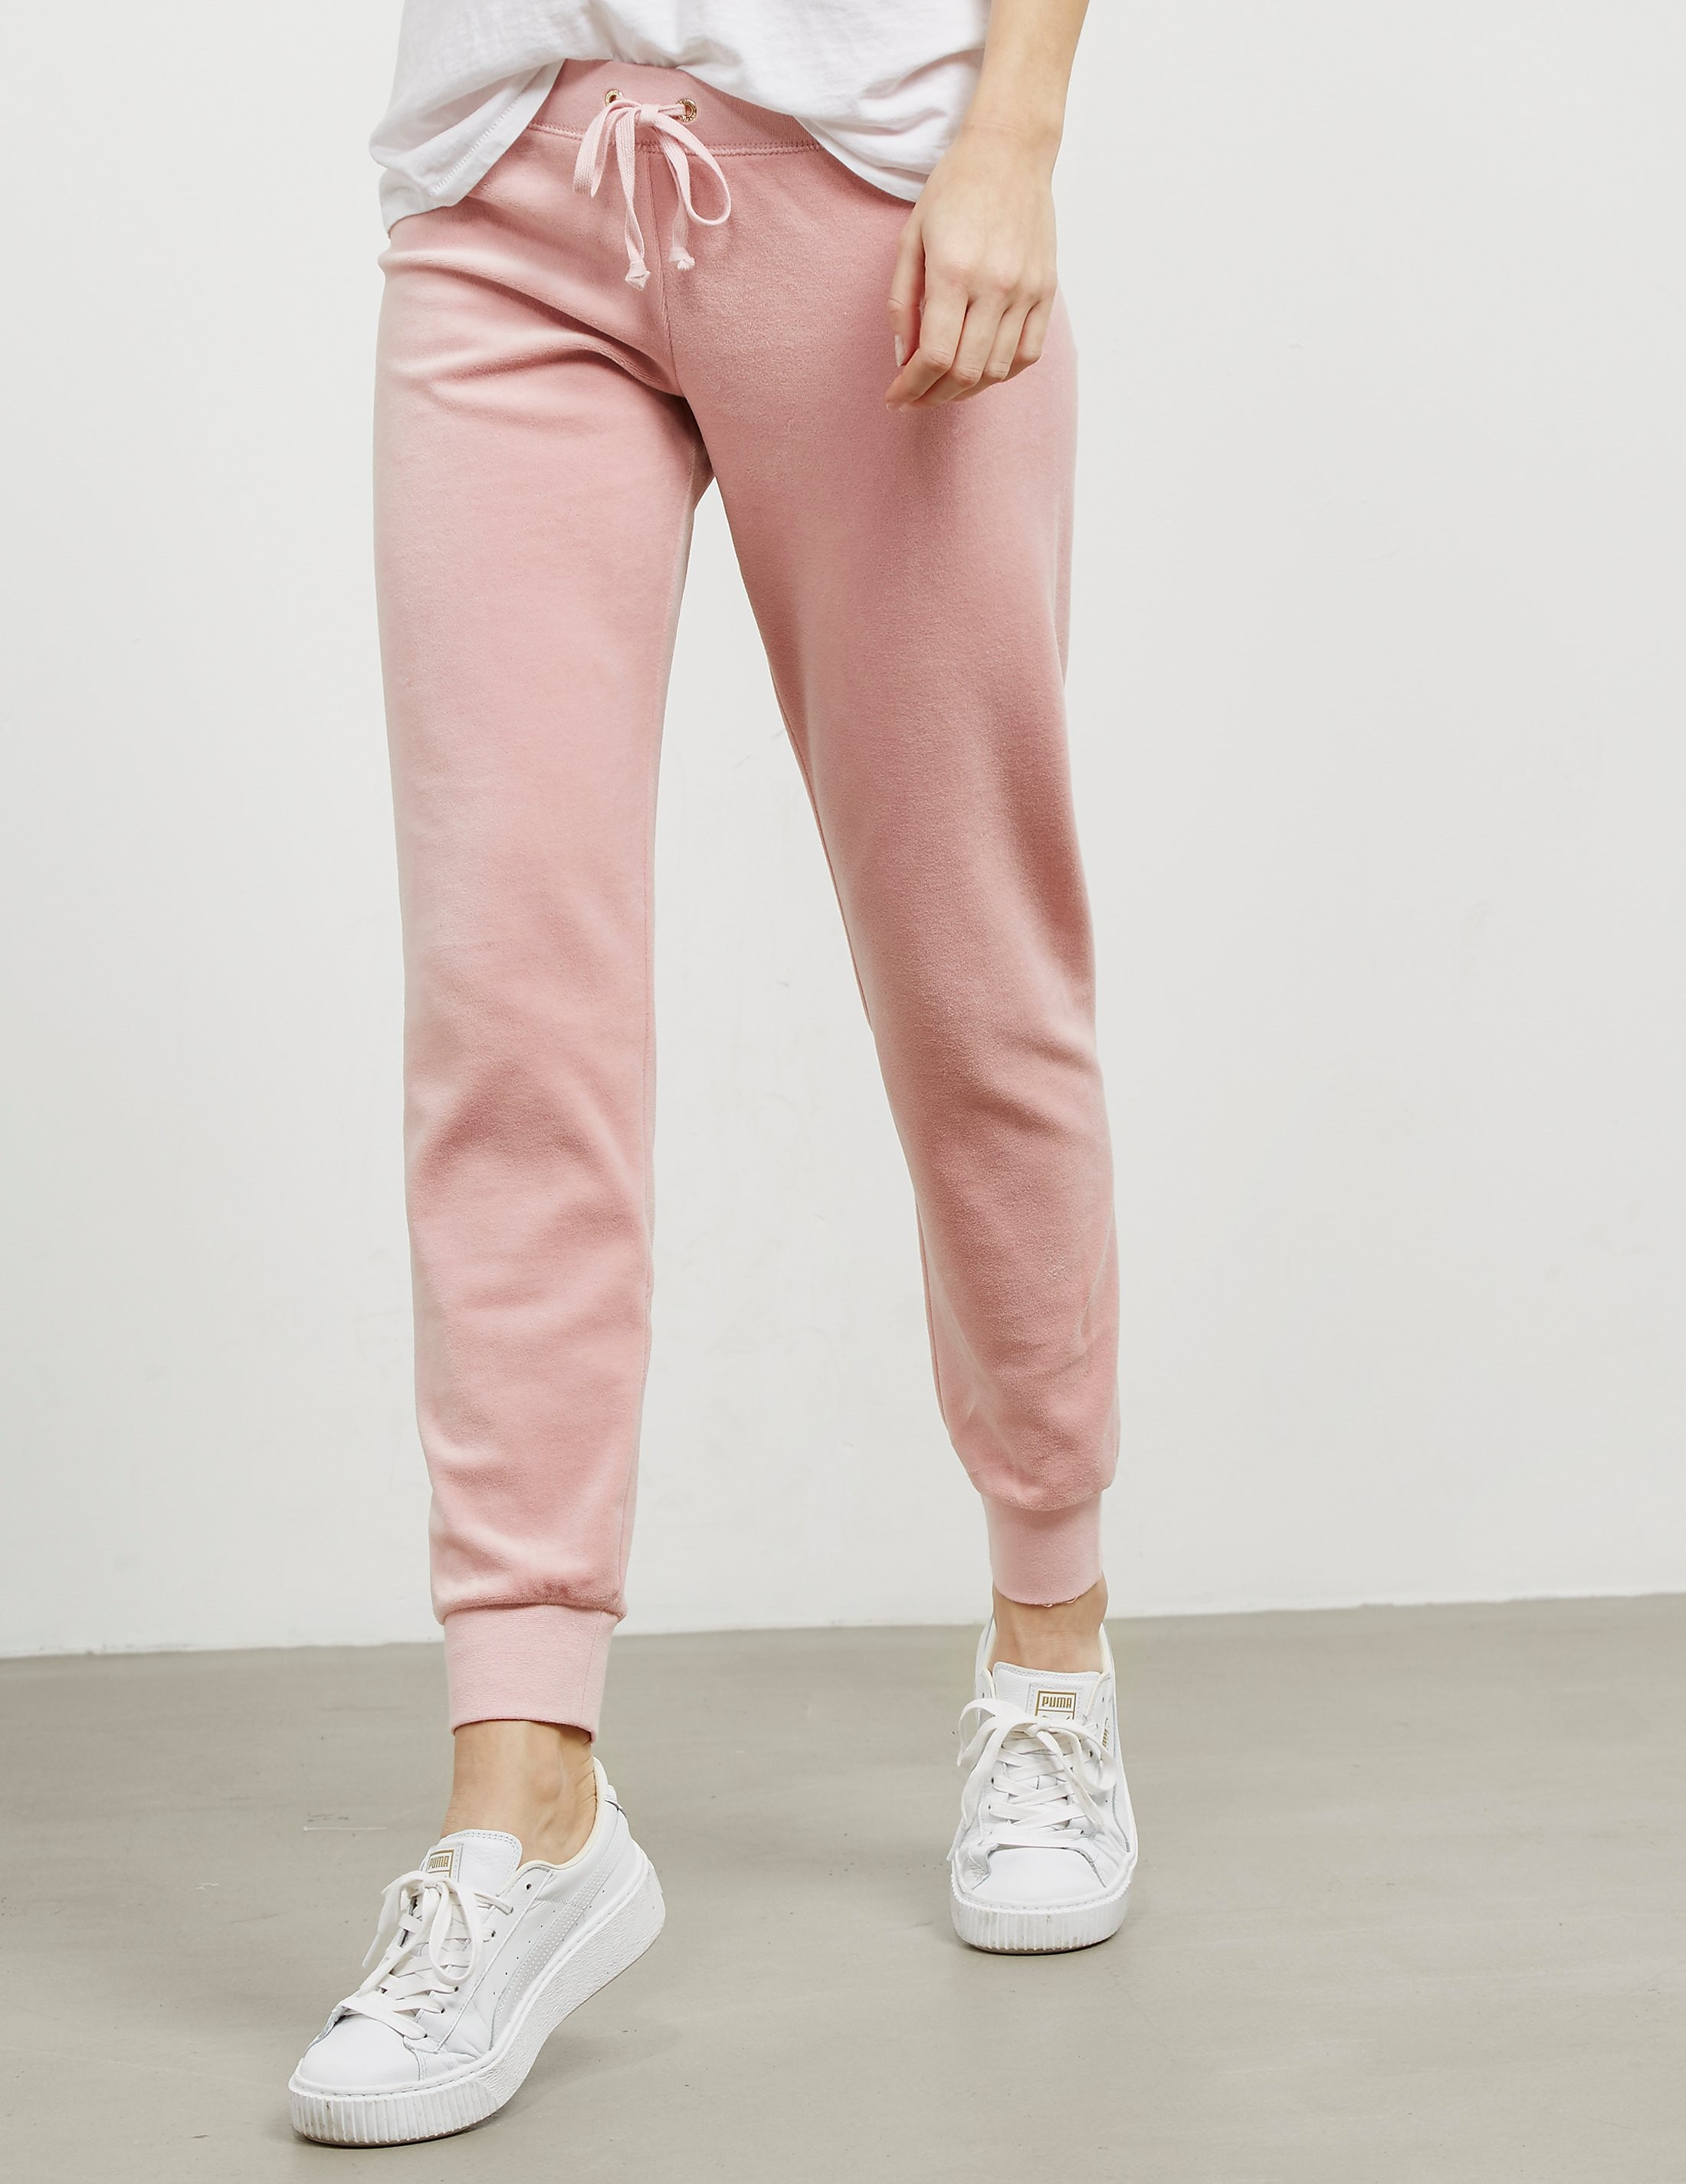 Juicy Couture Zuma Cuffed Track Pants